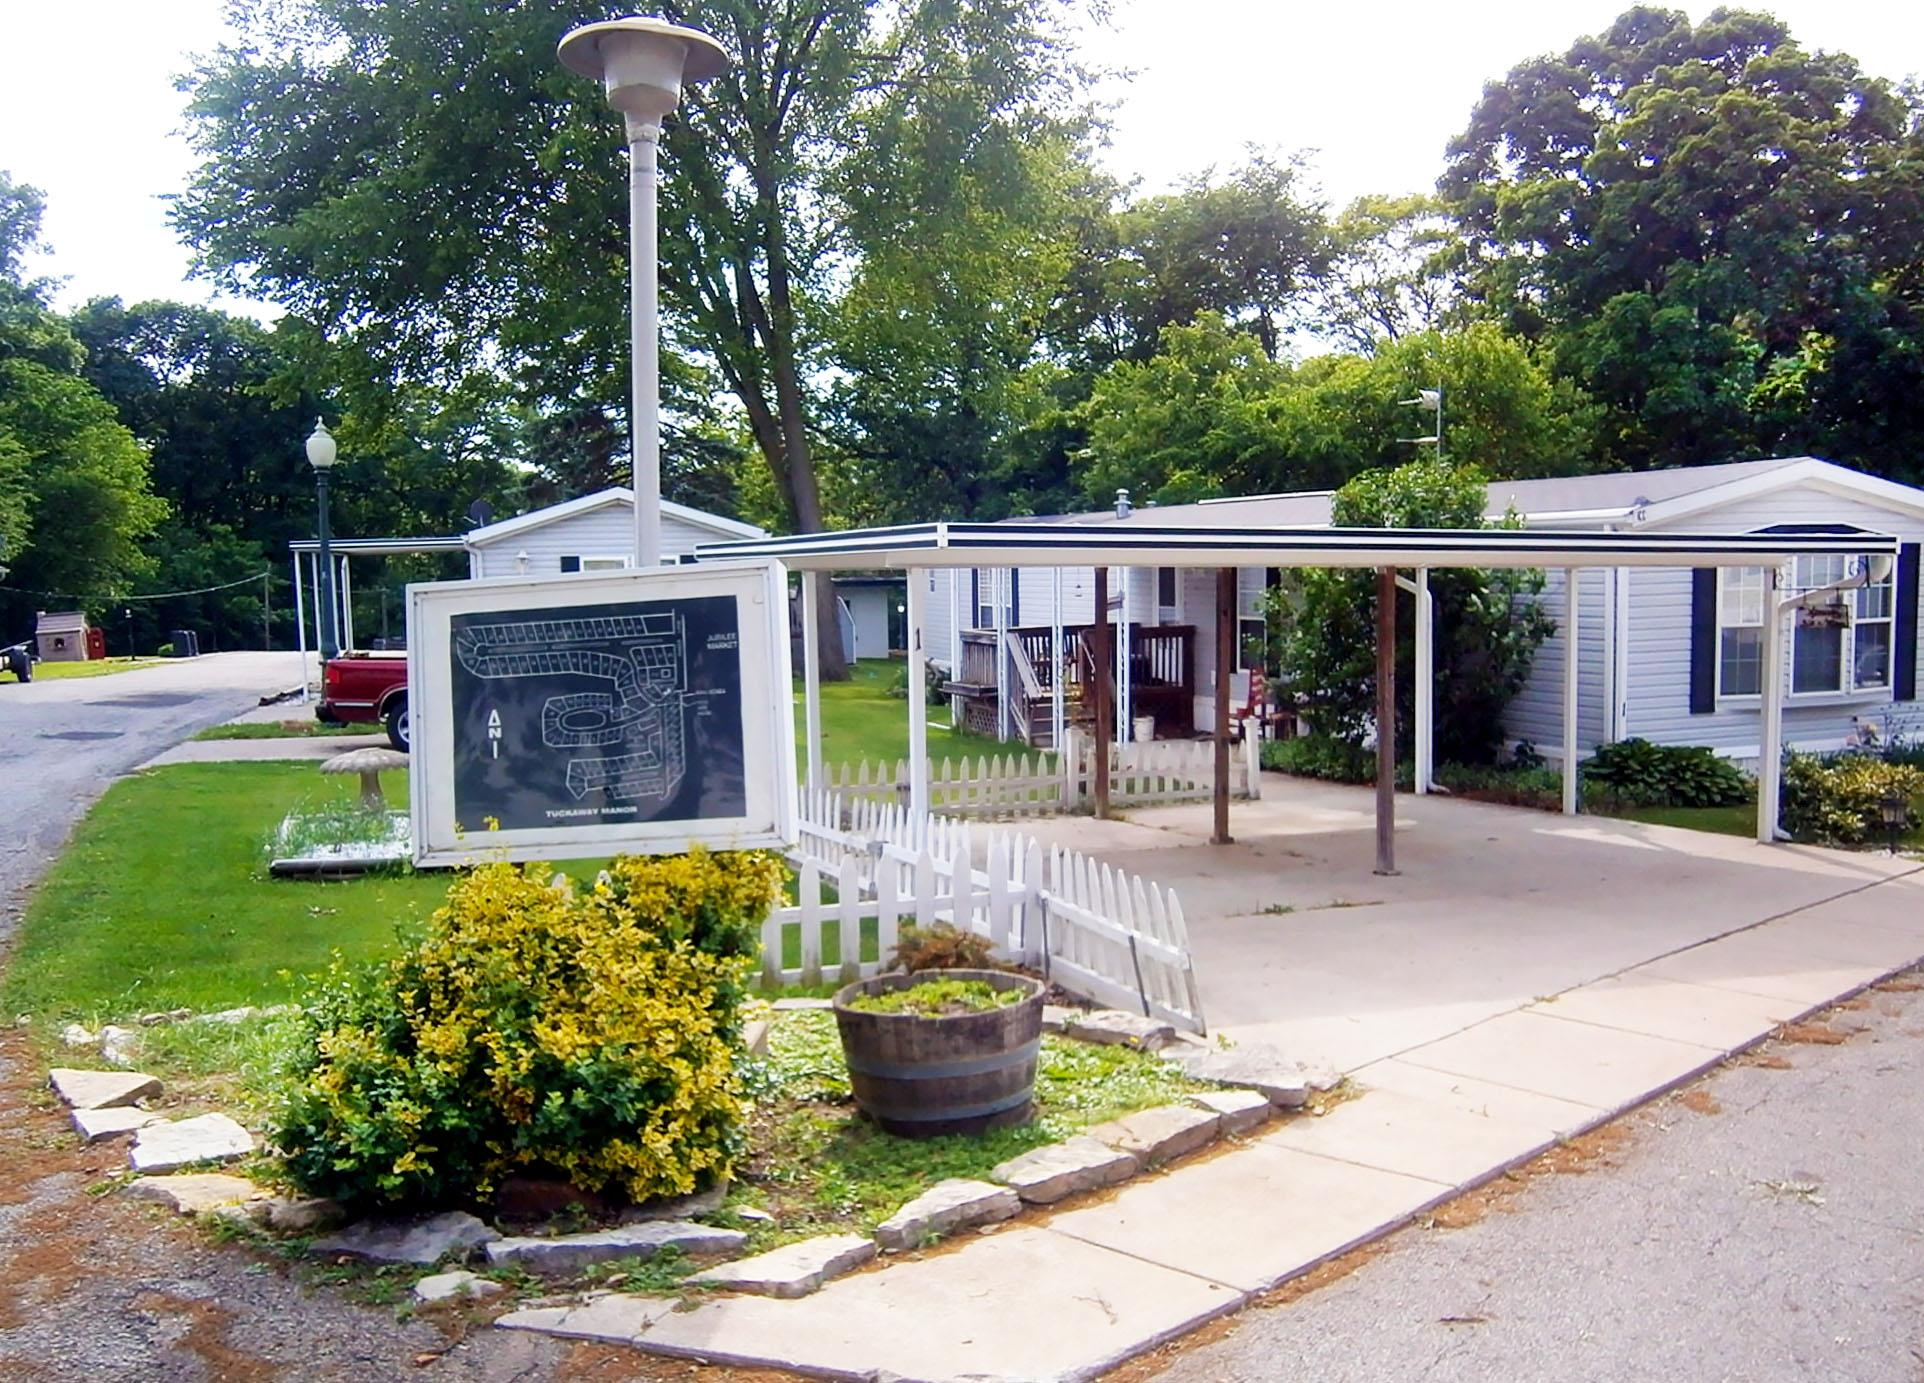 Tuckaway Village Mobile Home Park